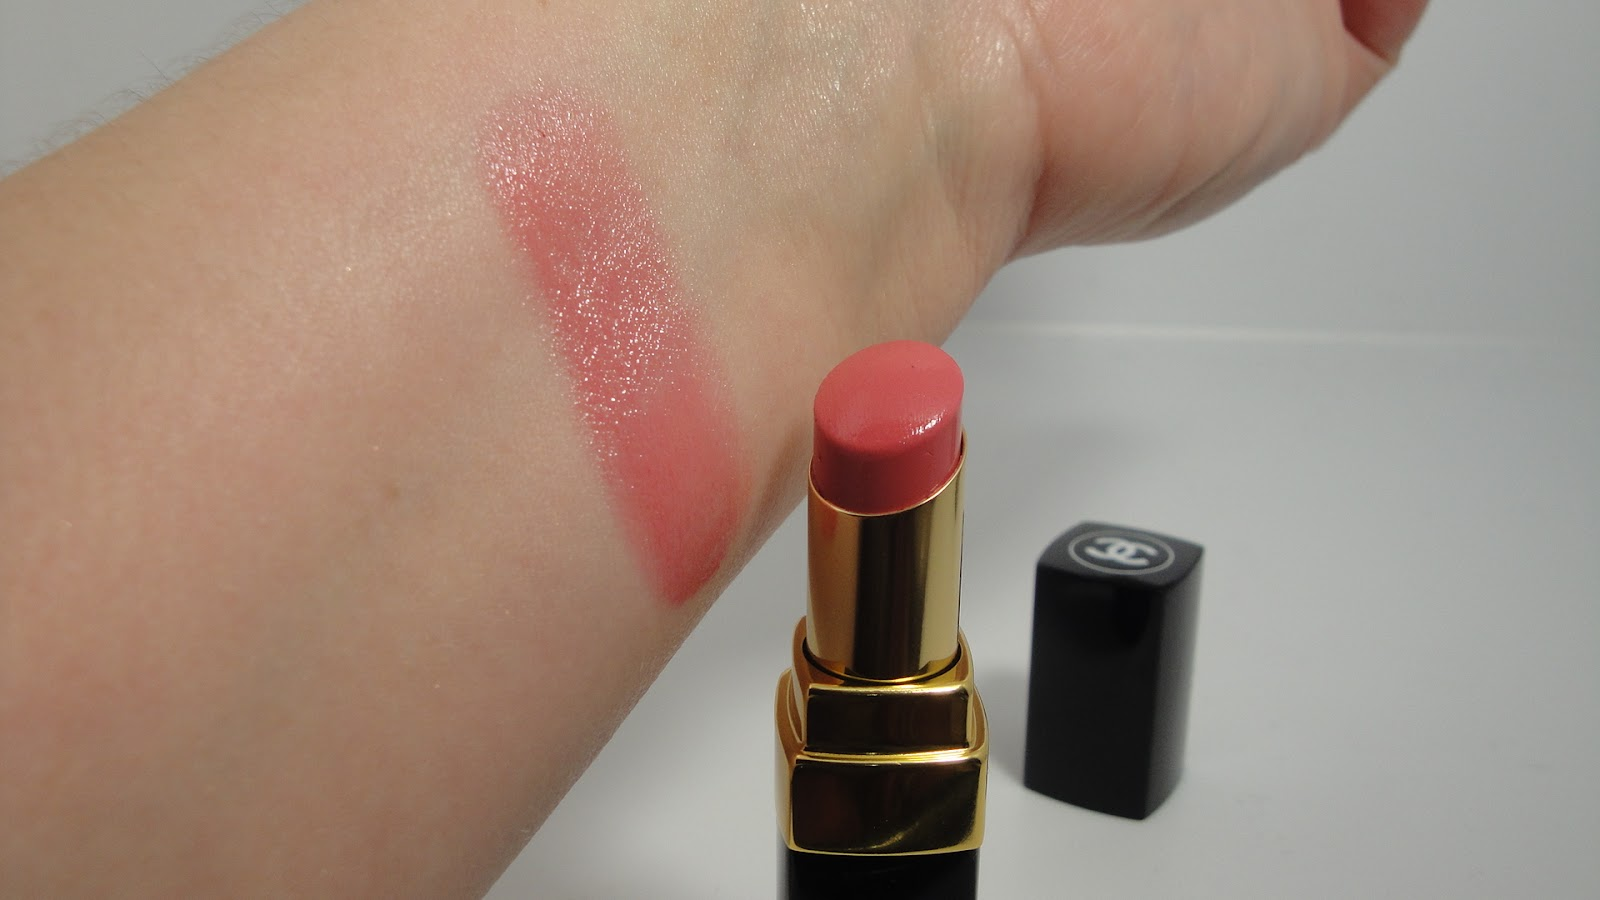 Jayded Dreaming Beauty Blog 55 Romance Chanel Rouge Coco Shine